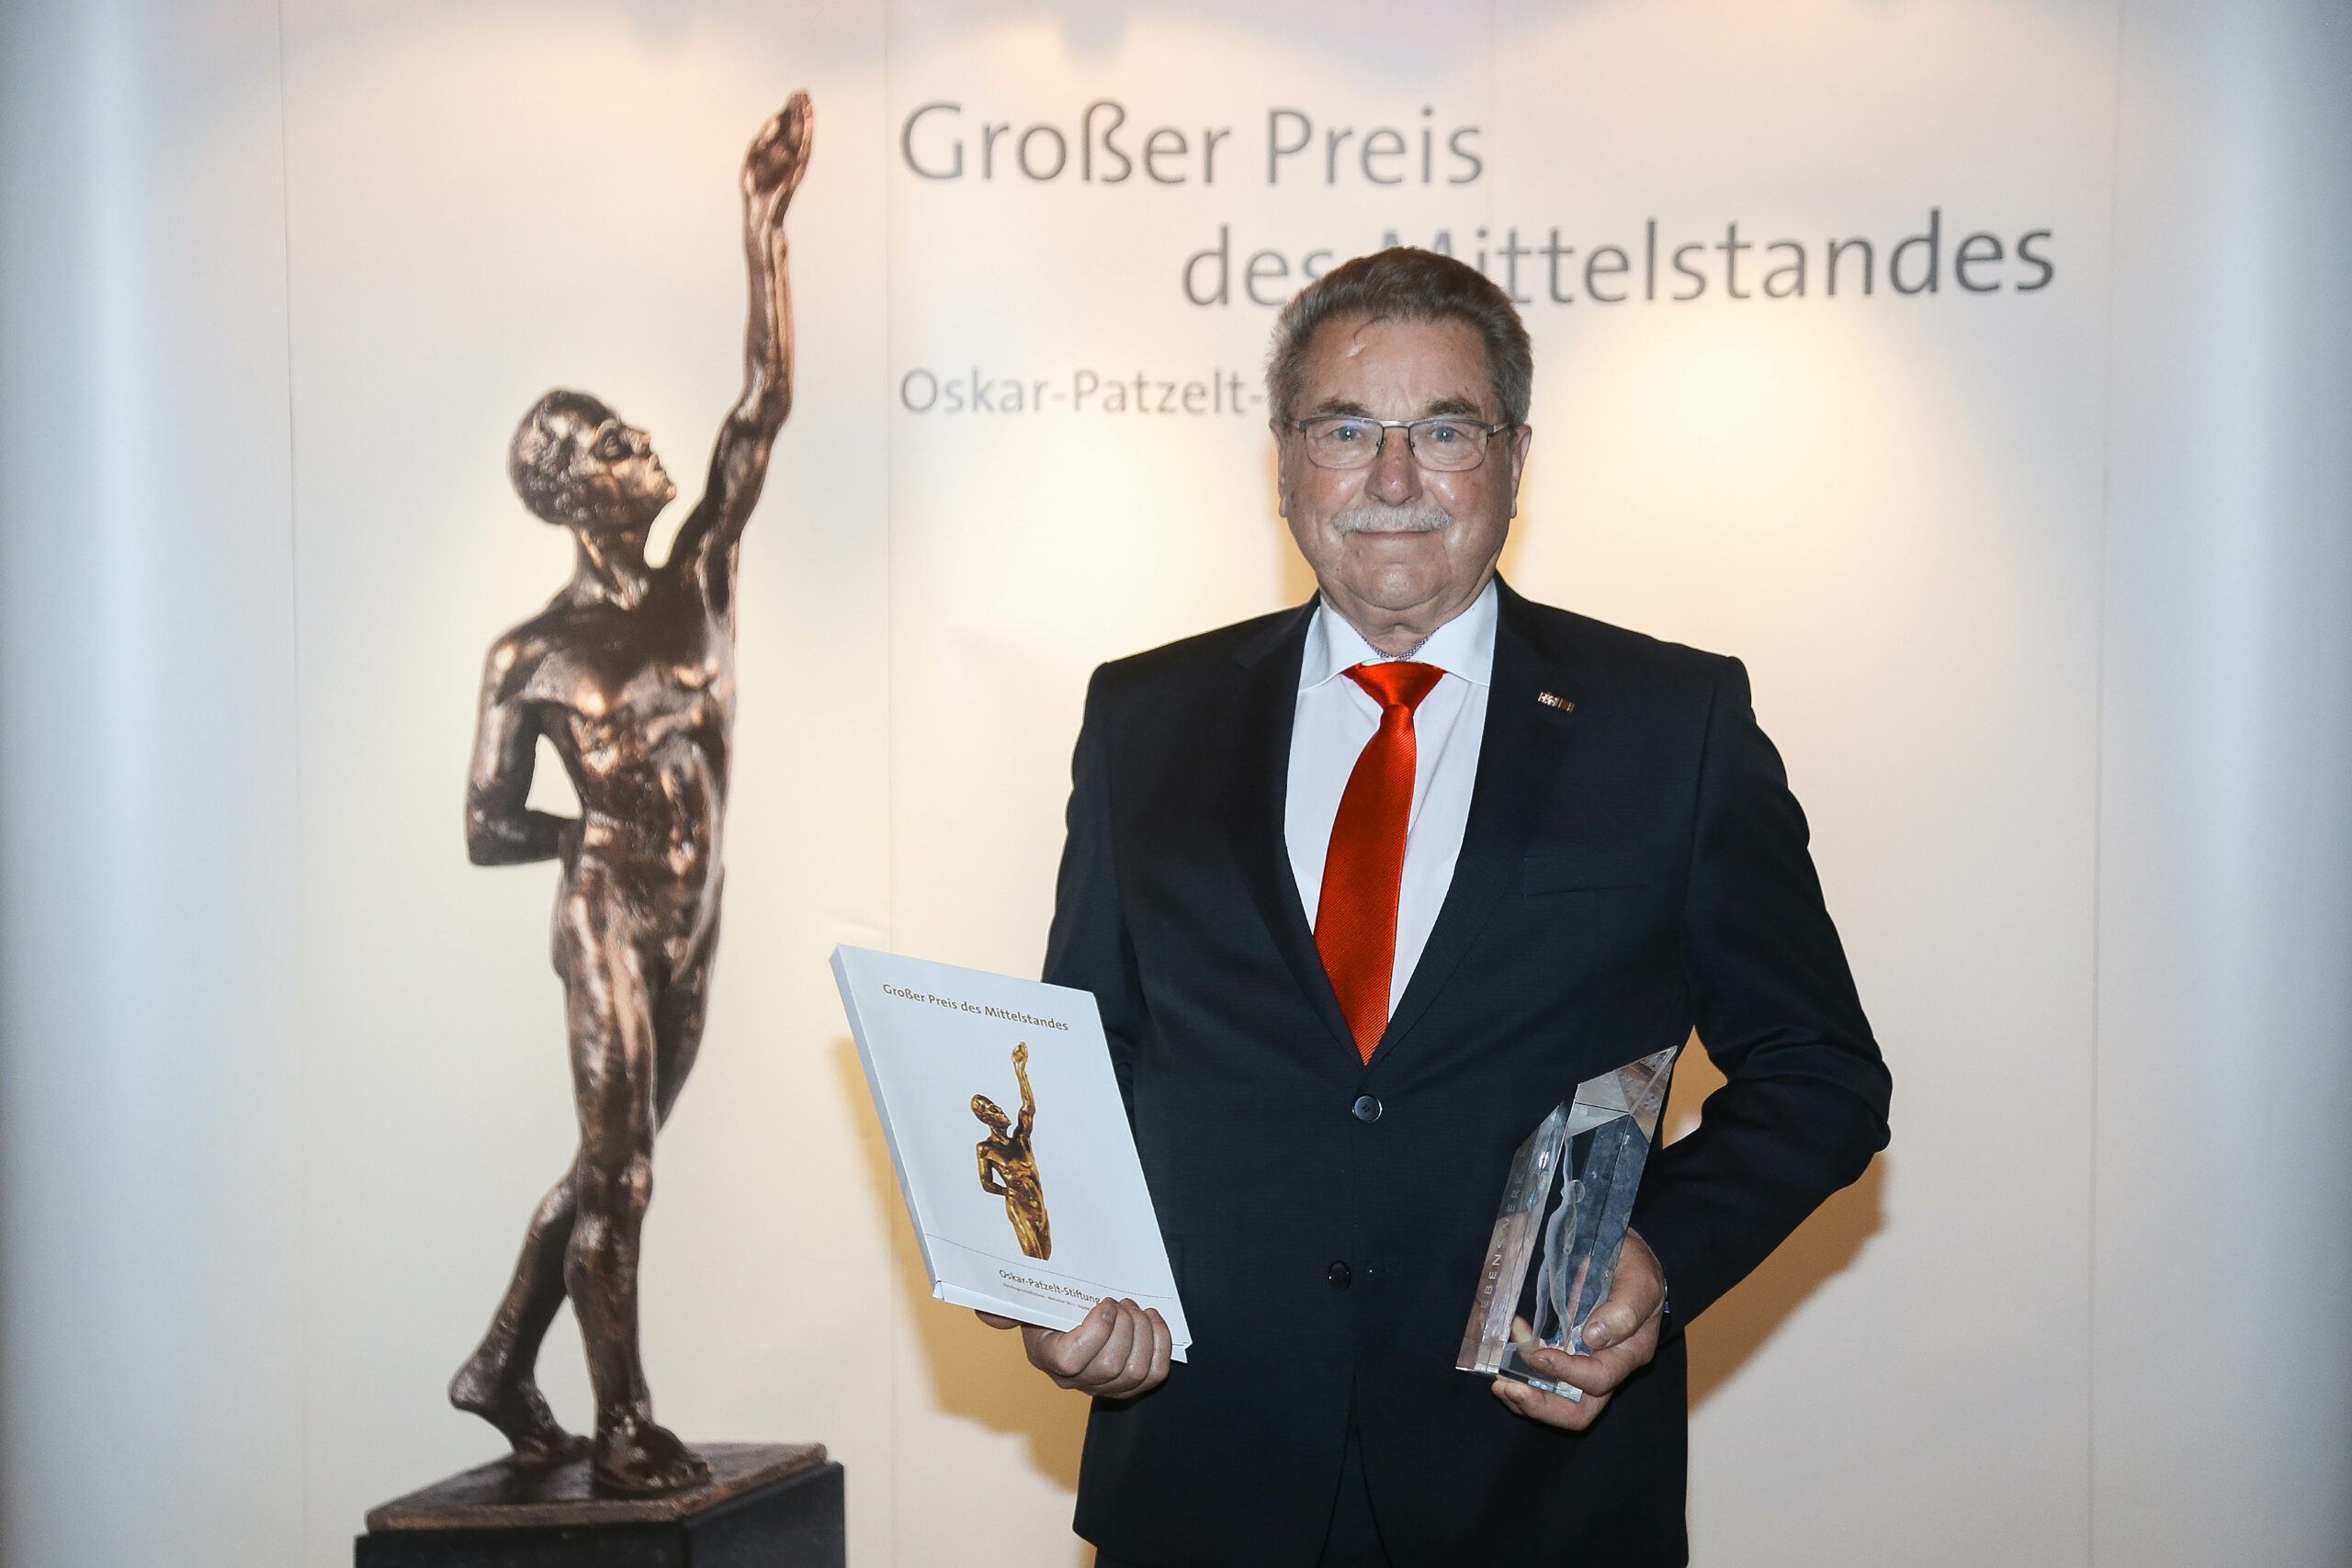 Helmut Hoffmann awarded for his lifetime achievement